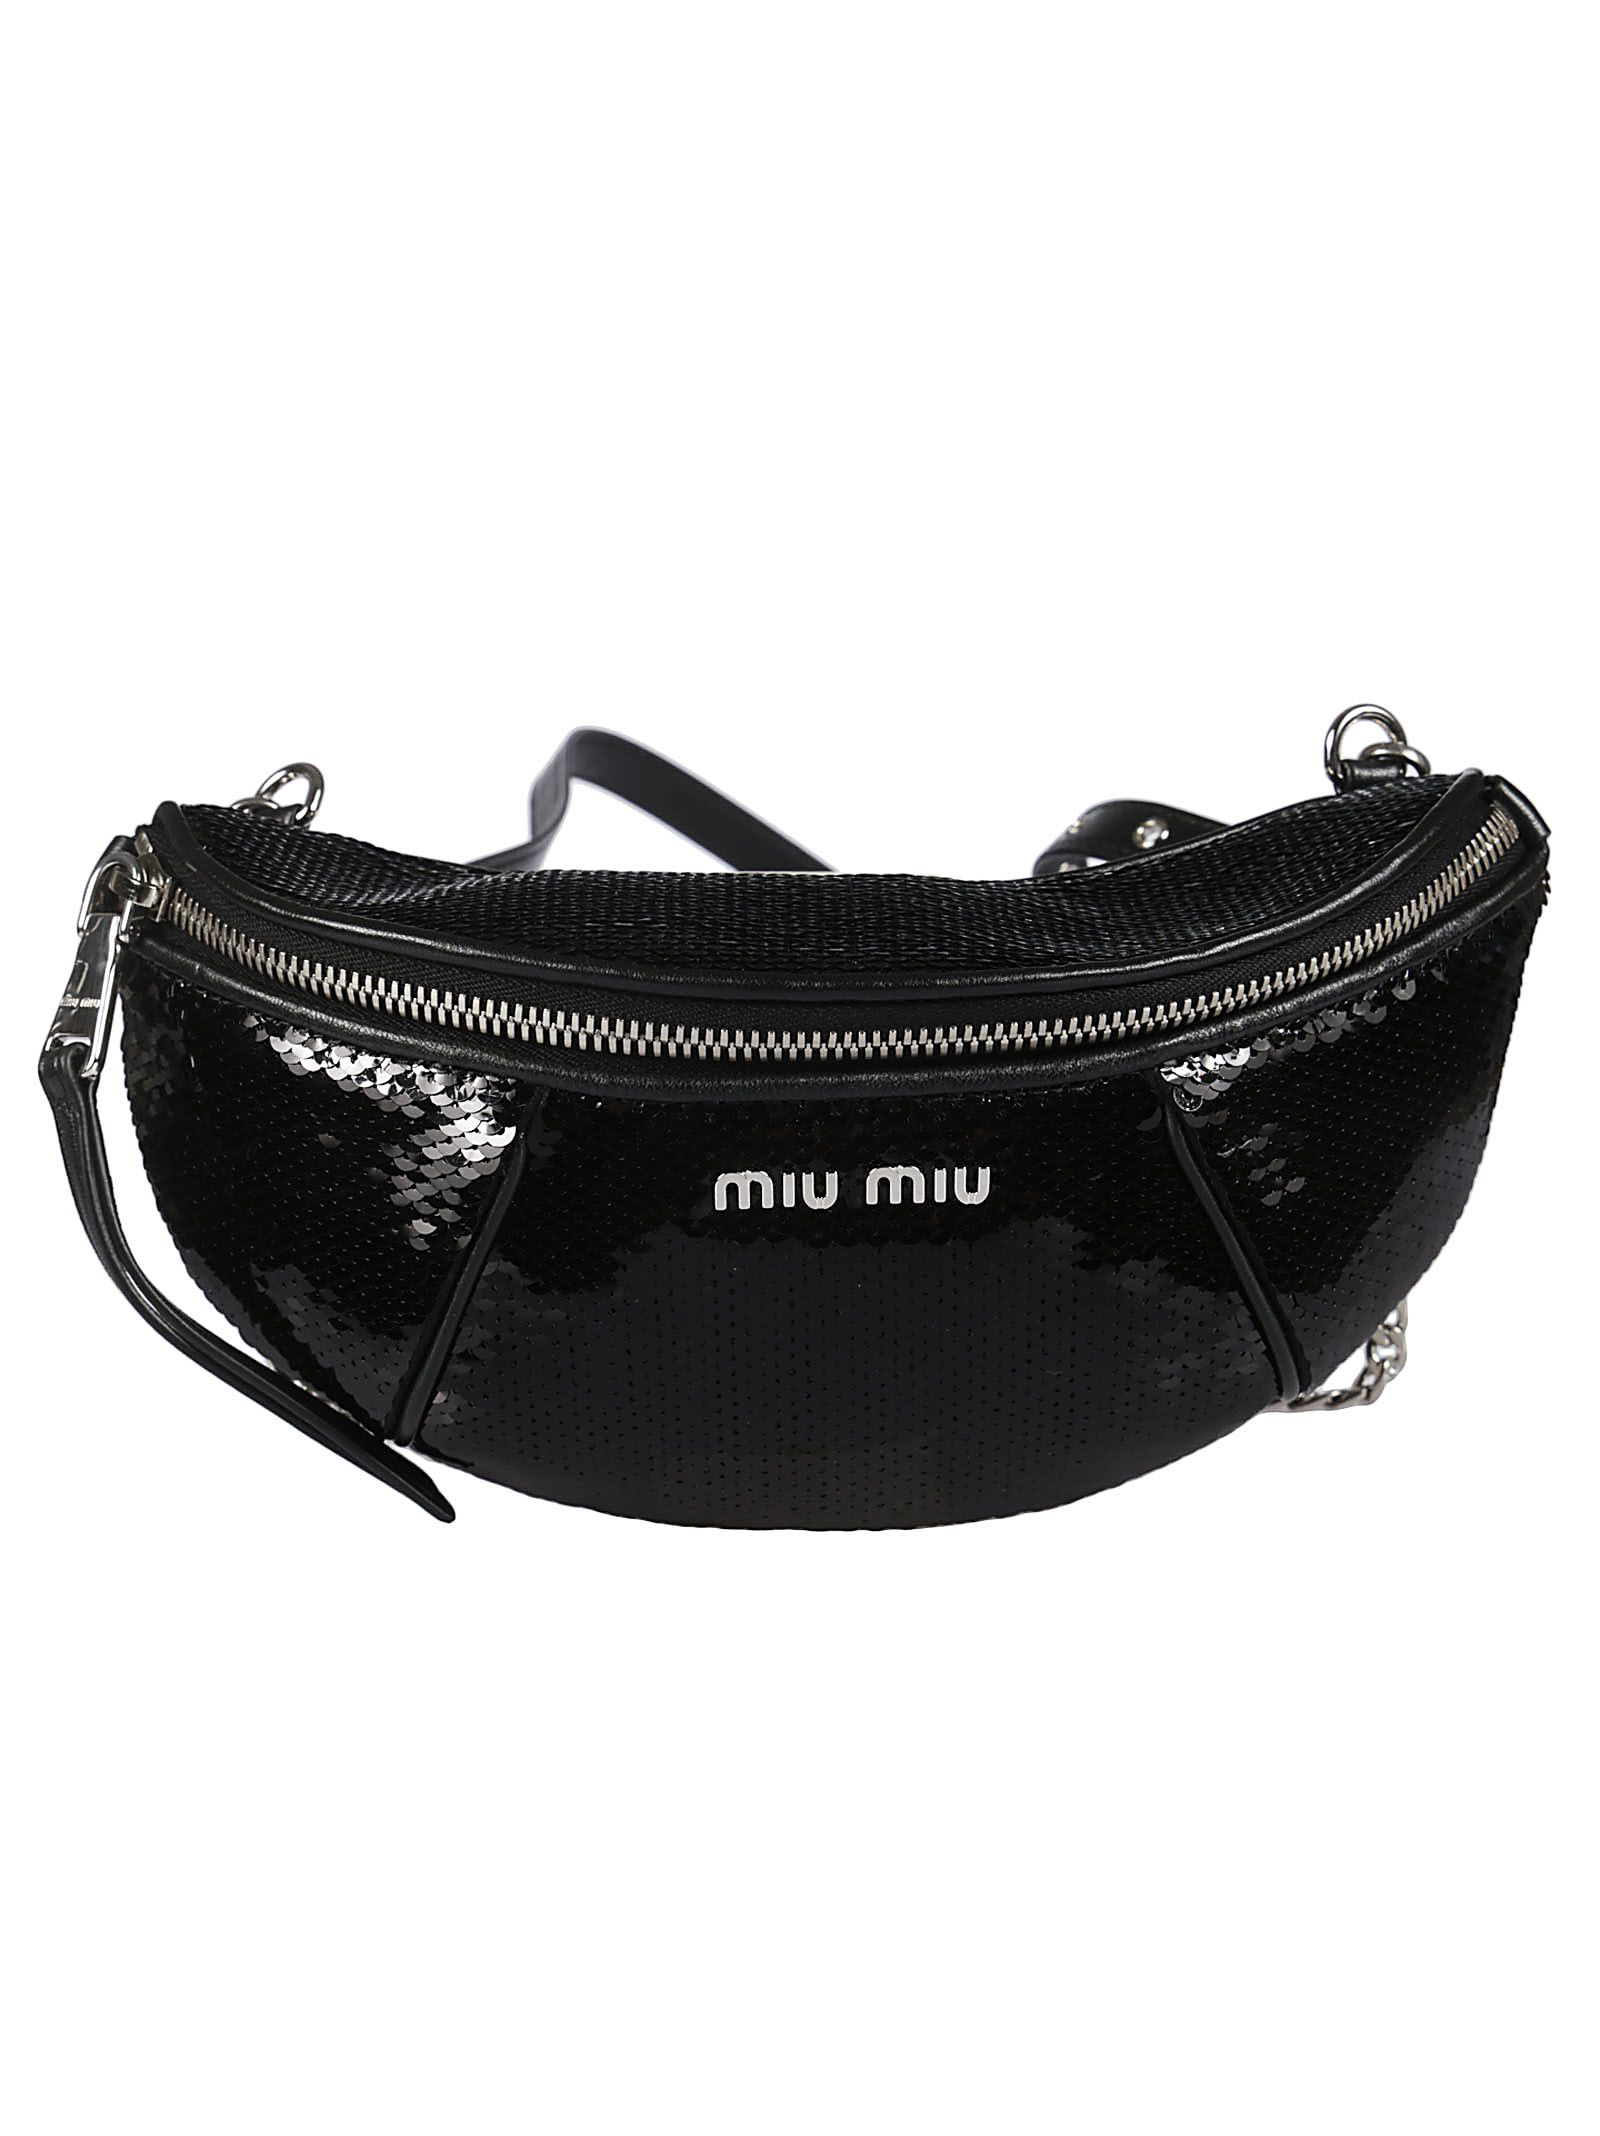 Miu Miu Paillettes Belt Bag